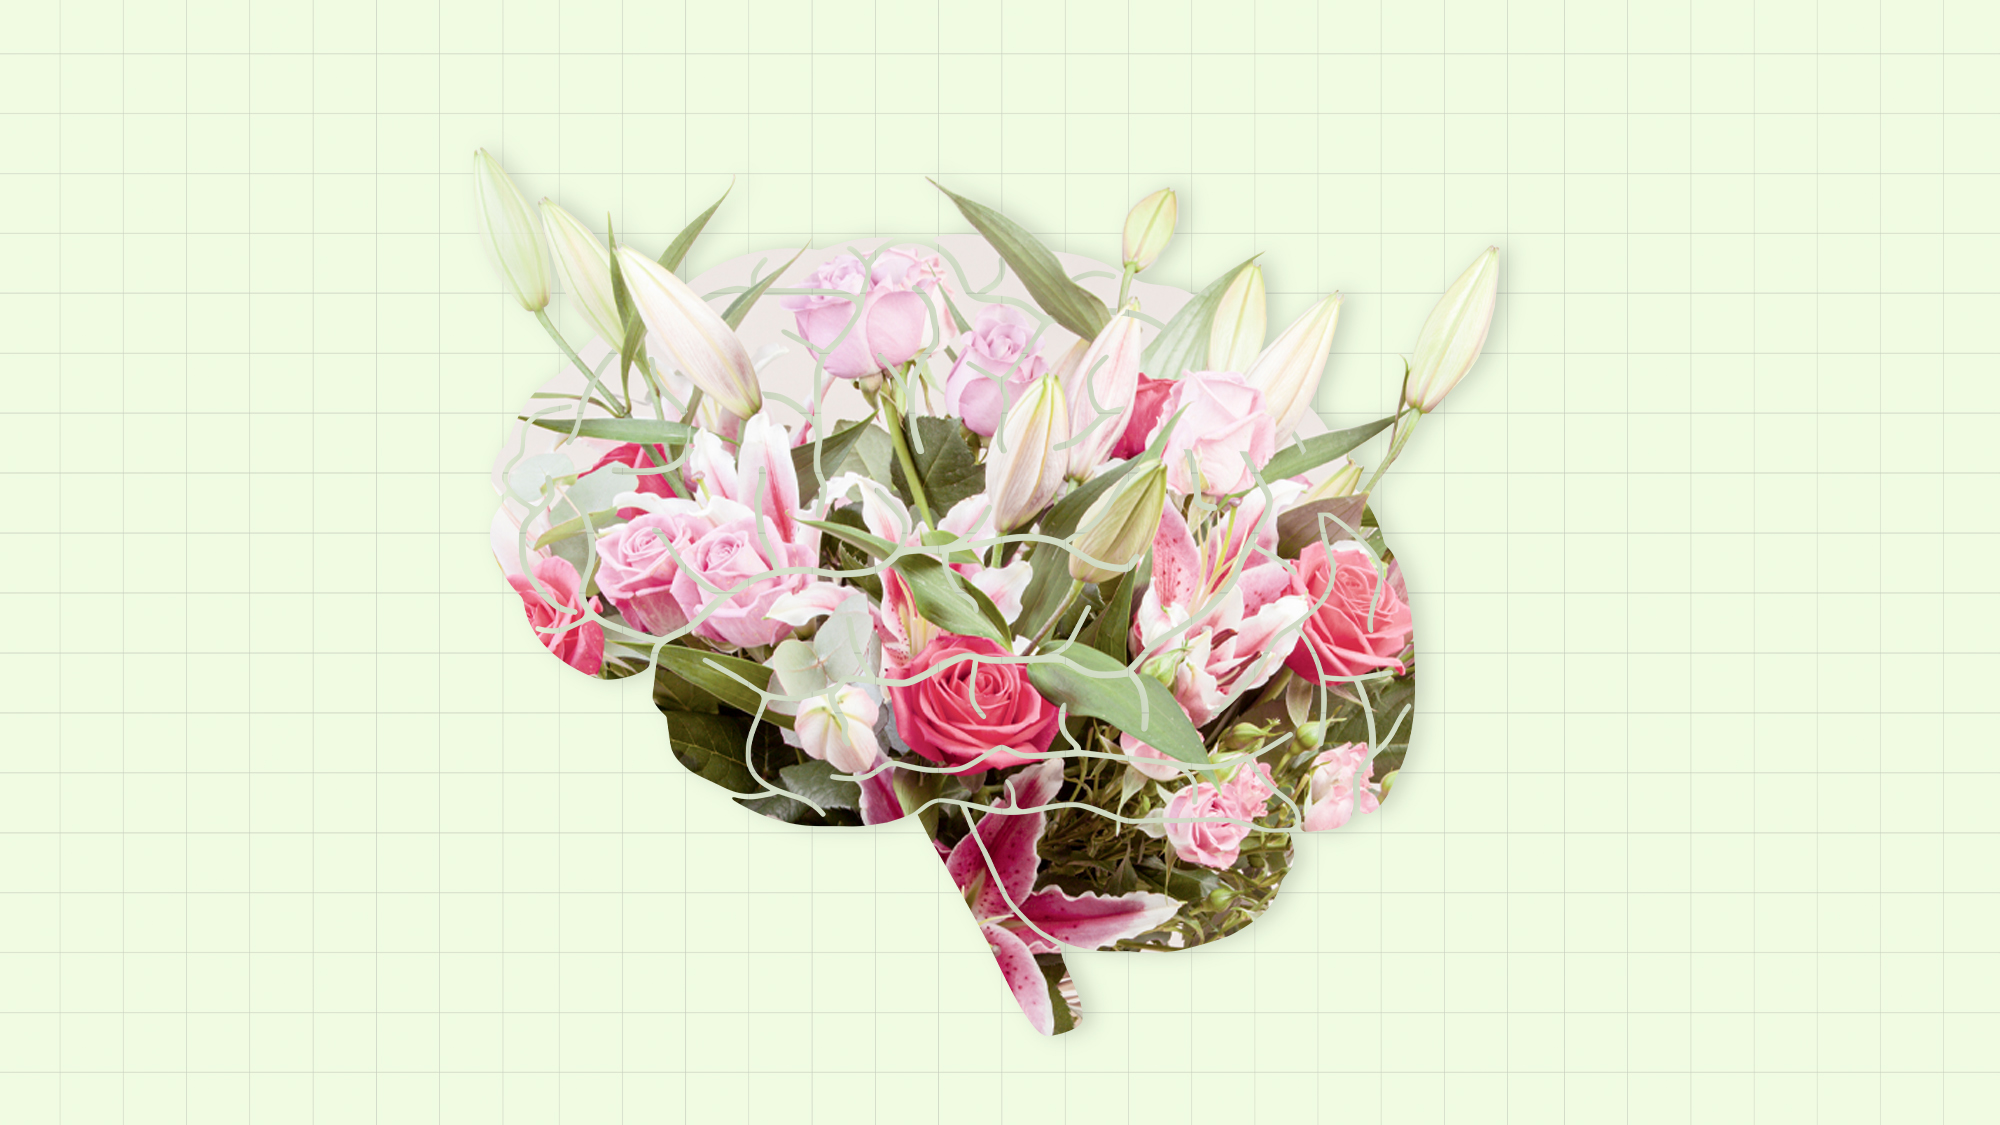 a bouquet in the shape of a brain on a designed background